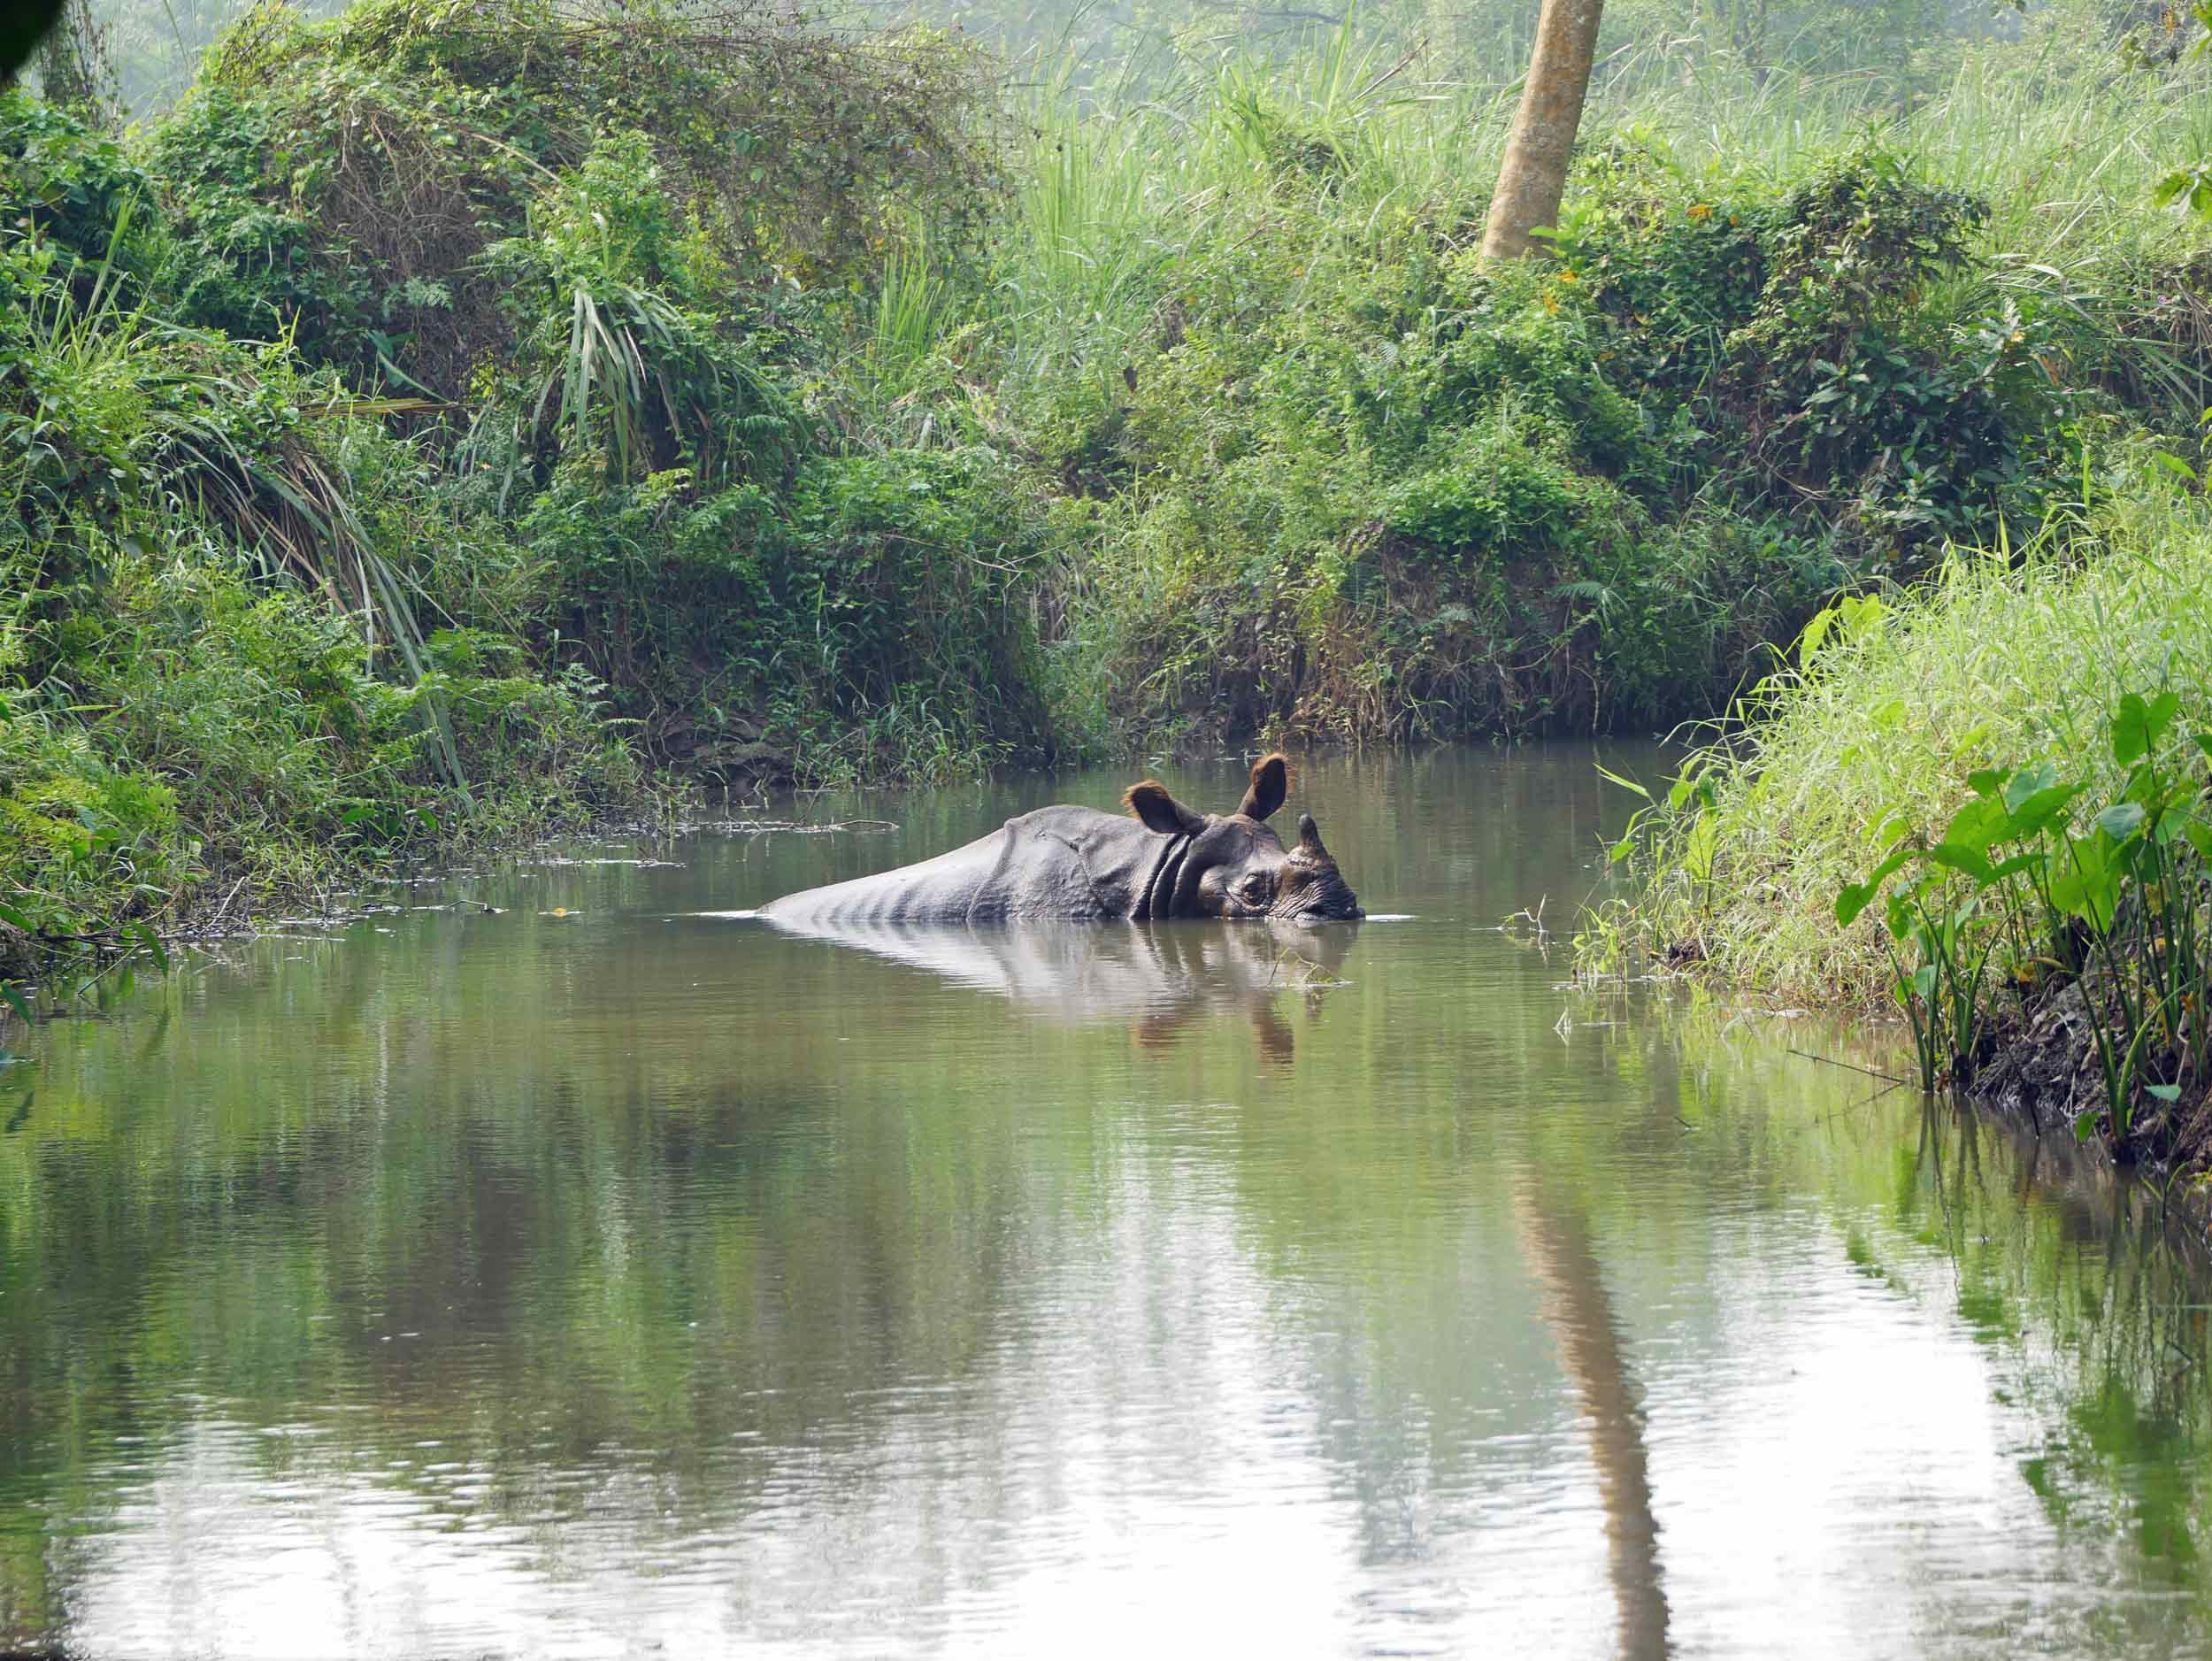 While on foot, we spotted a large male rhino beating the mid-day heat.